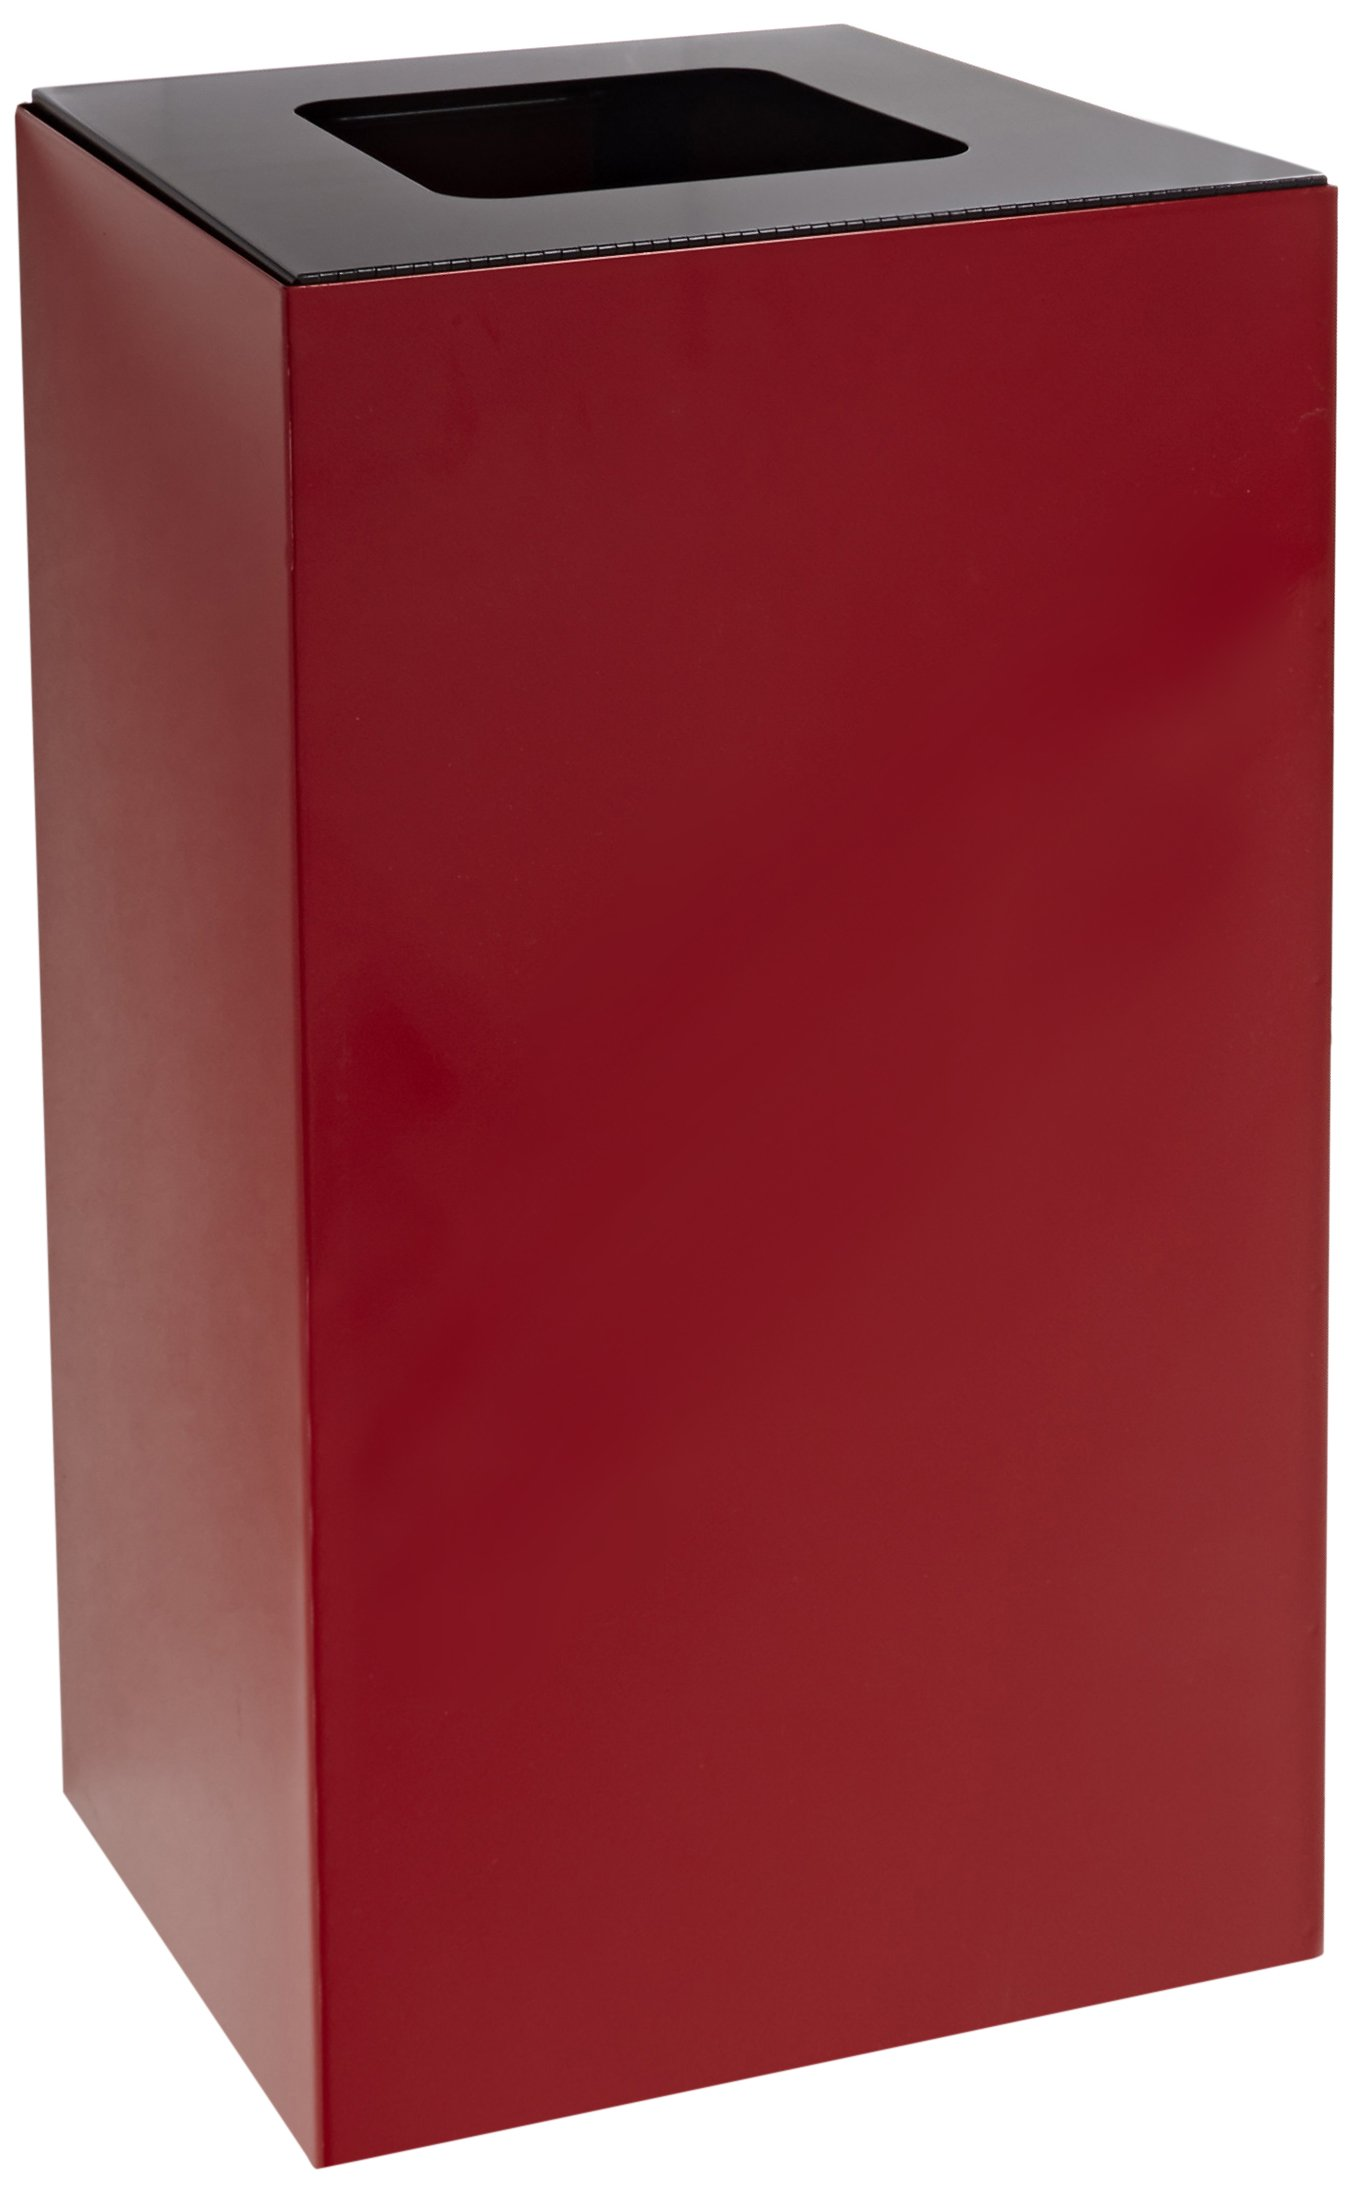 Witt Industries 28GC03-SC Steel 28-Gallon Geo Cube Recycling Container, Square Opening, Legend ''Waste'', Square, 15'' Width x 15'' Depth x 28'' Height, Scarlet Red by Witt Industries